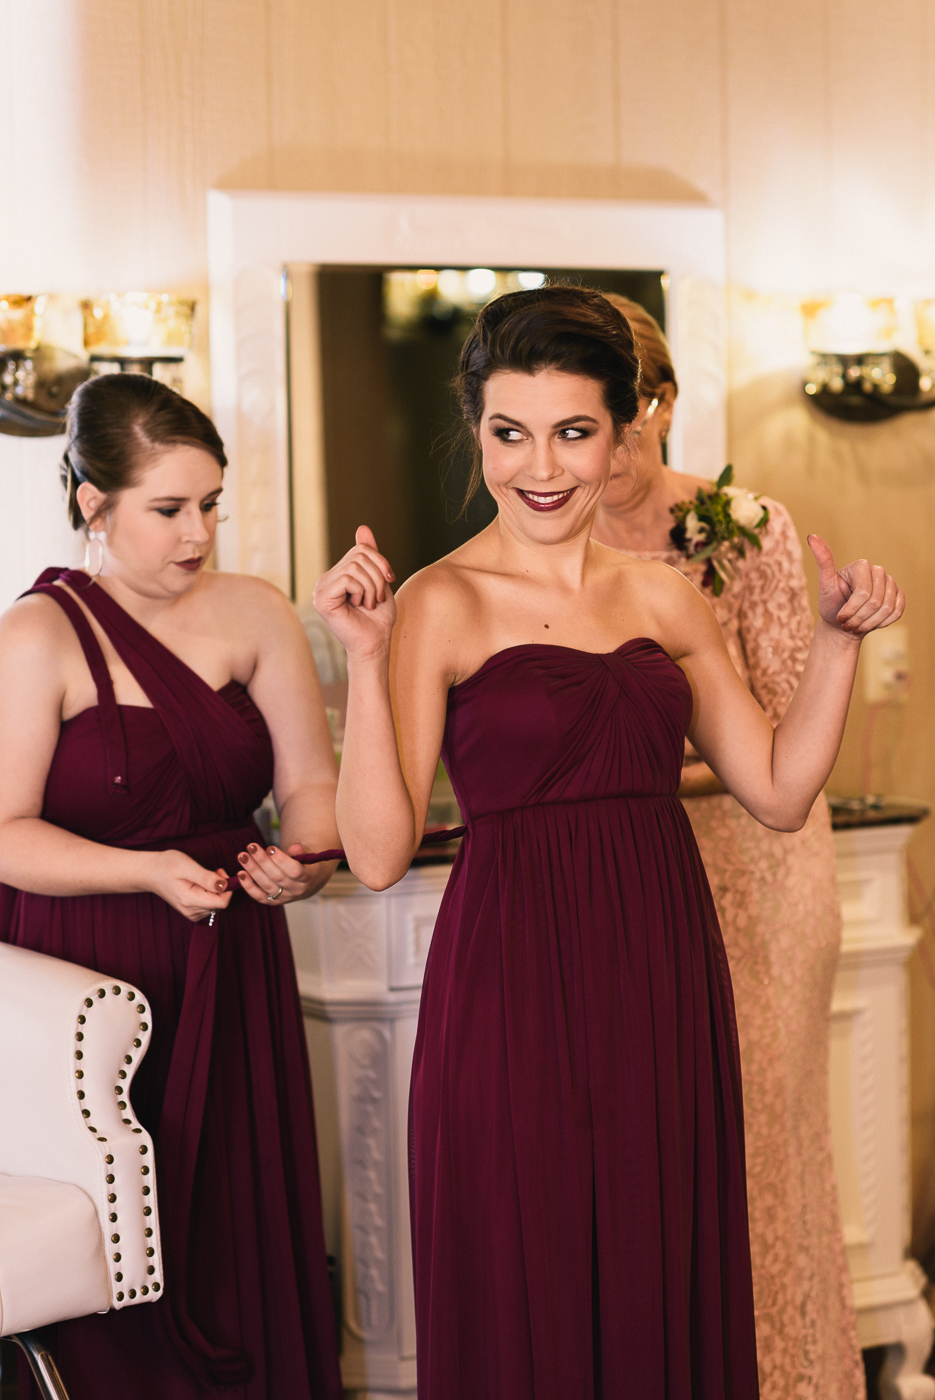 bridesmaid getting ready maroon dress hair and makeup dress tie lipstick sister of the groom